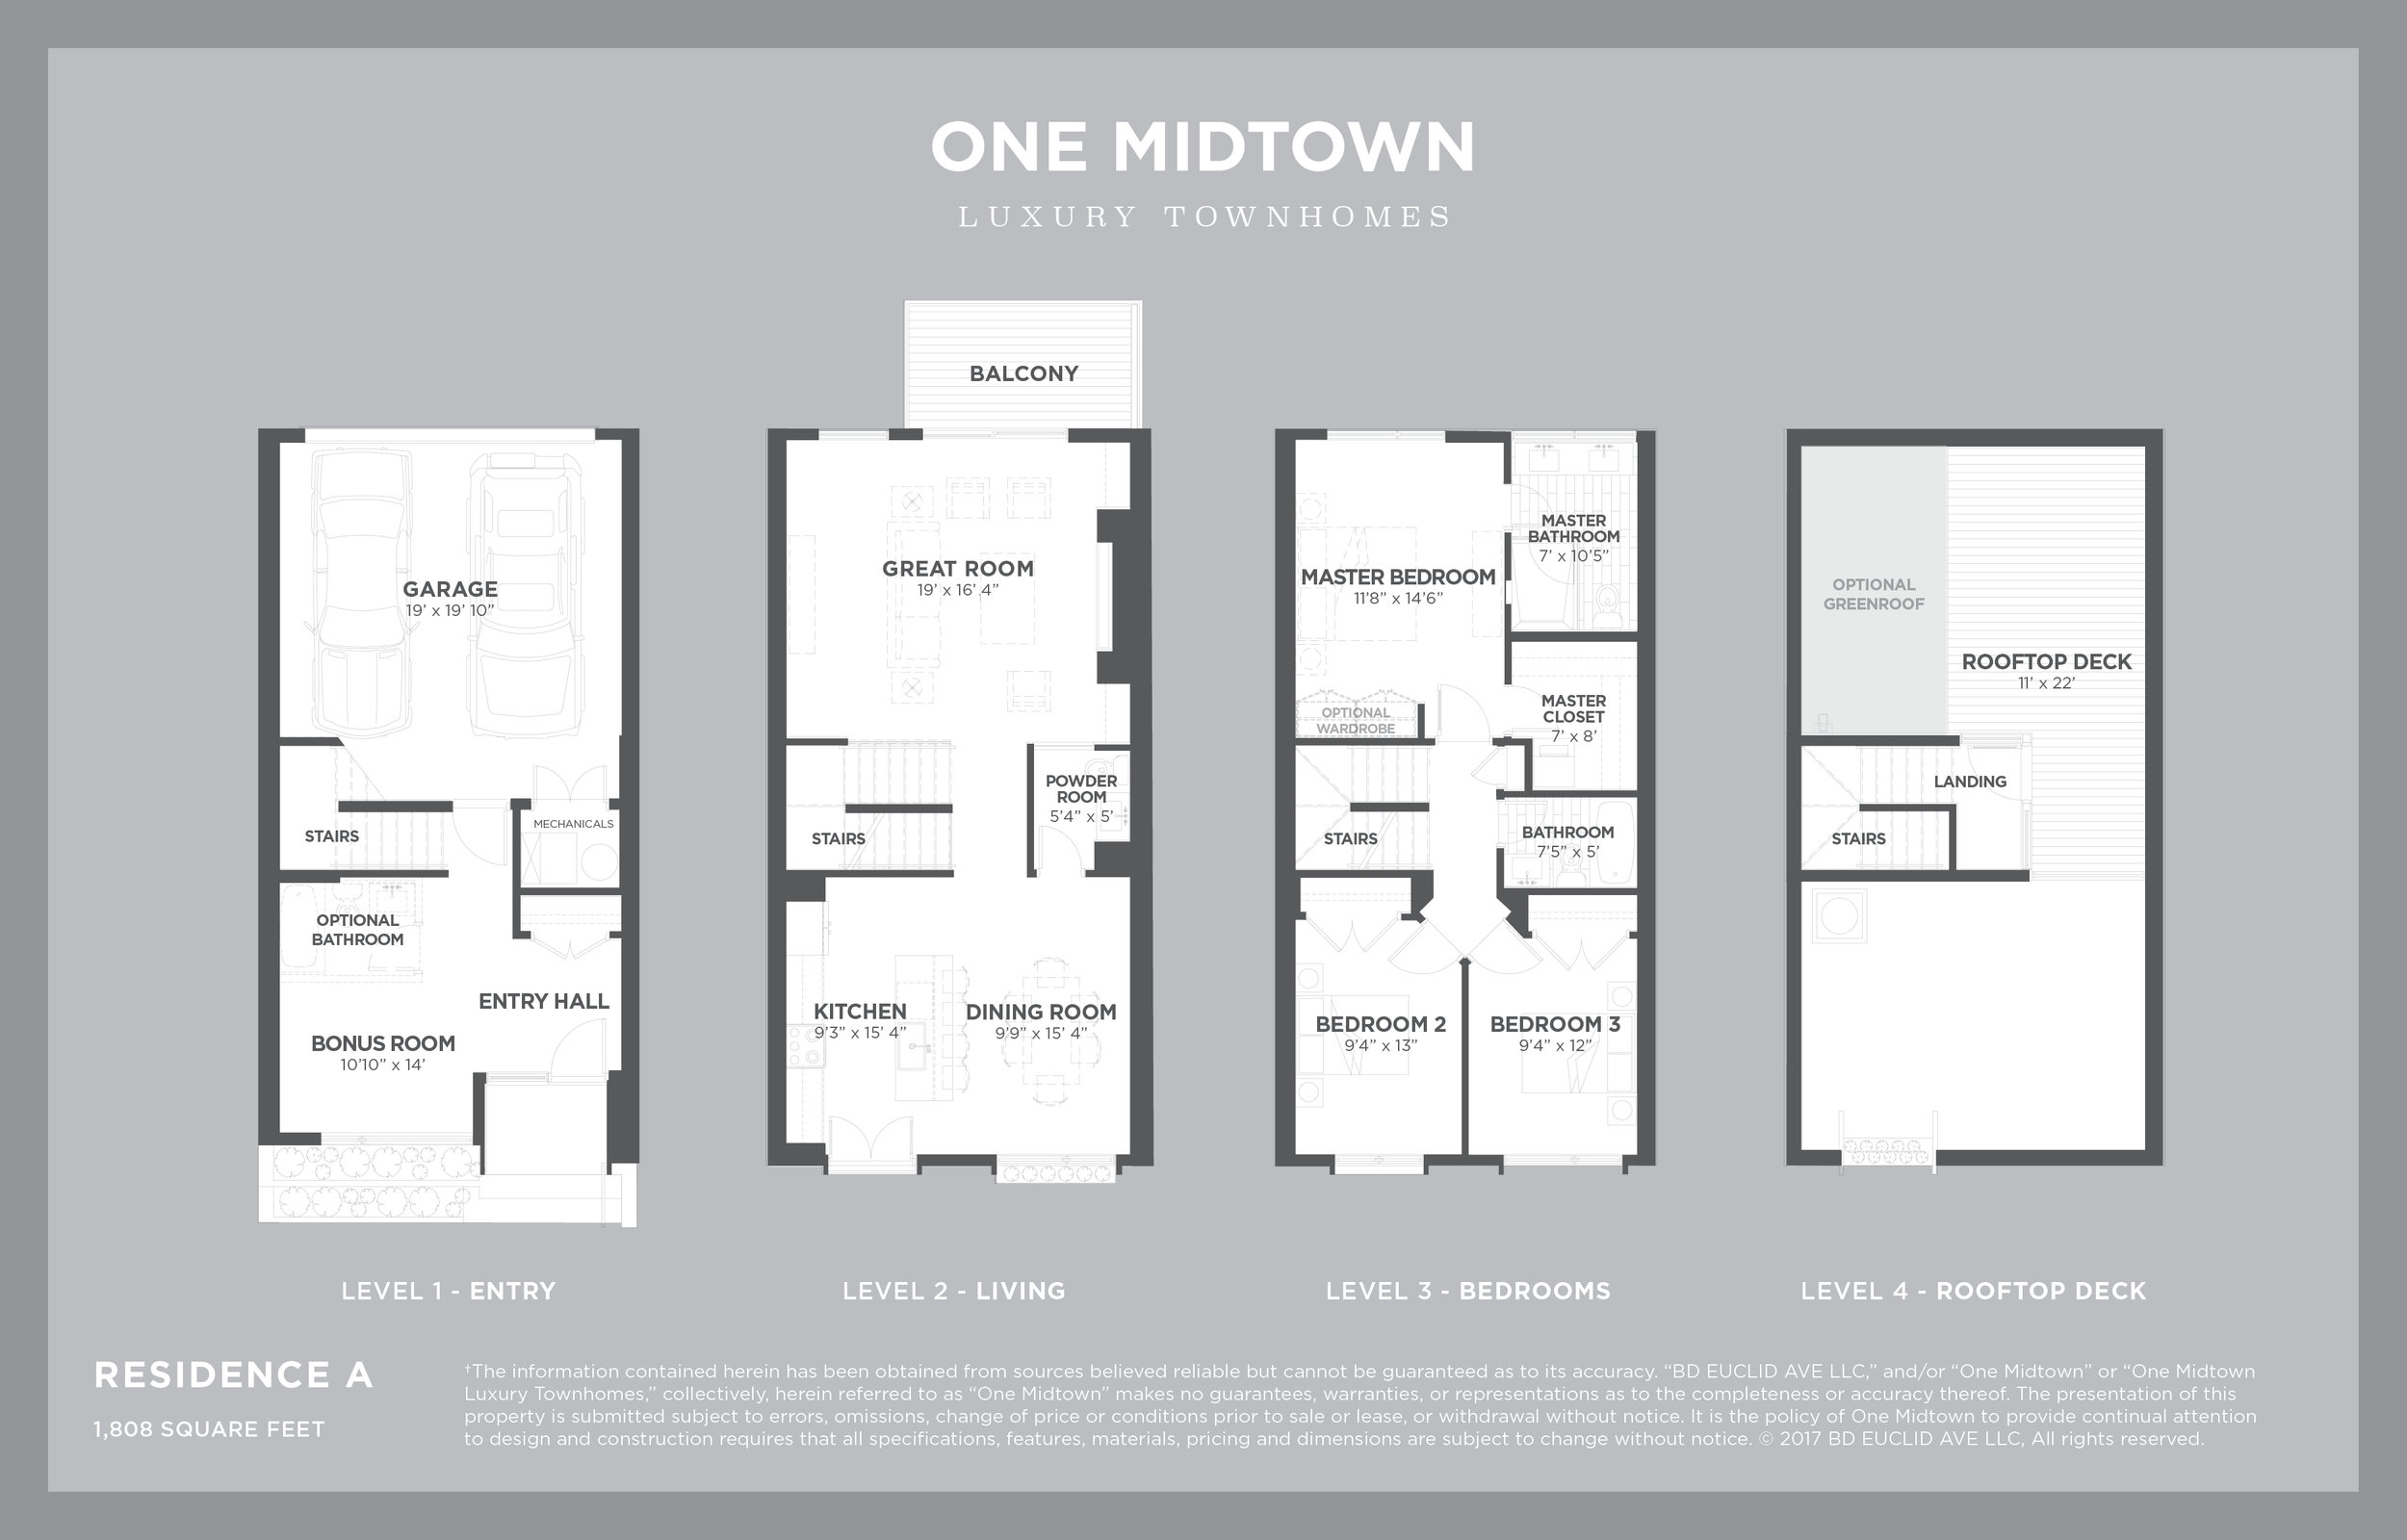 ONE MIDTOWN - Residence A, 1,808 sf